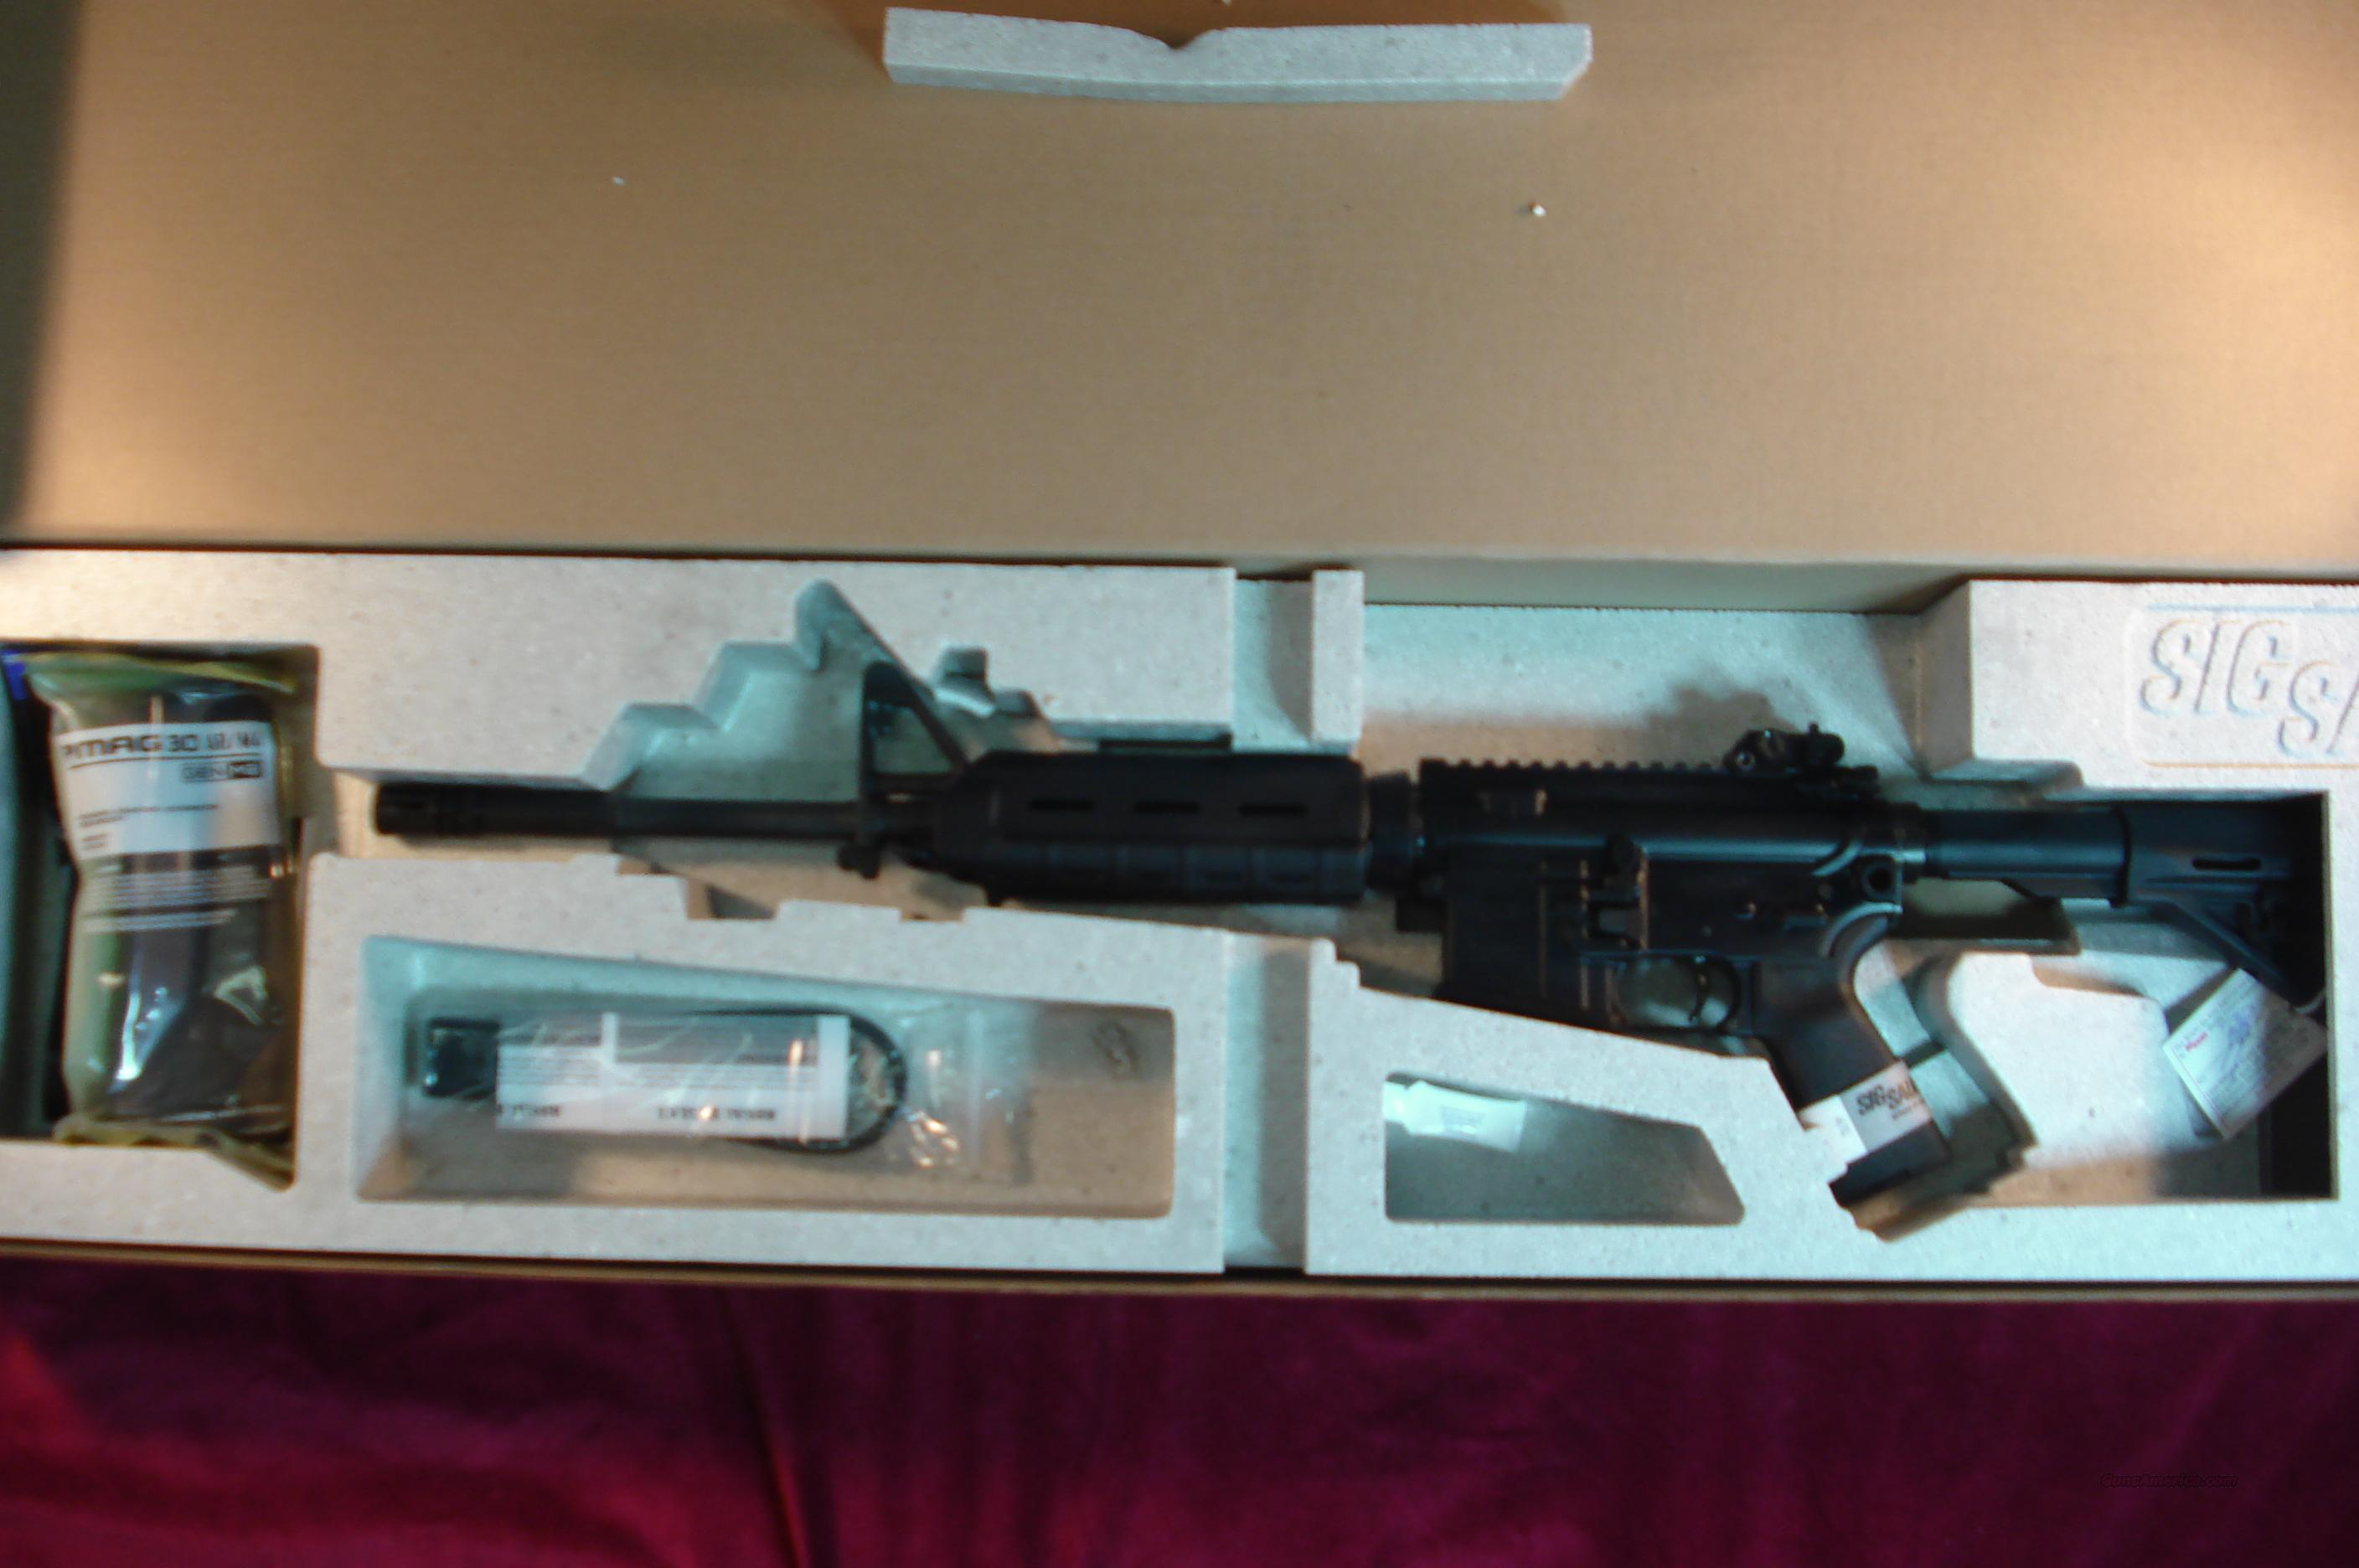 SIG SAUER M400 ENHANCED AR-15 5.56/223 CAL. WITH SIGTAC CP1 SCOPE NEW  Guns > Rifles > Sig - Sauer/Sigarms Rifles